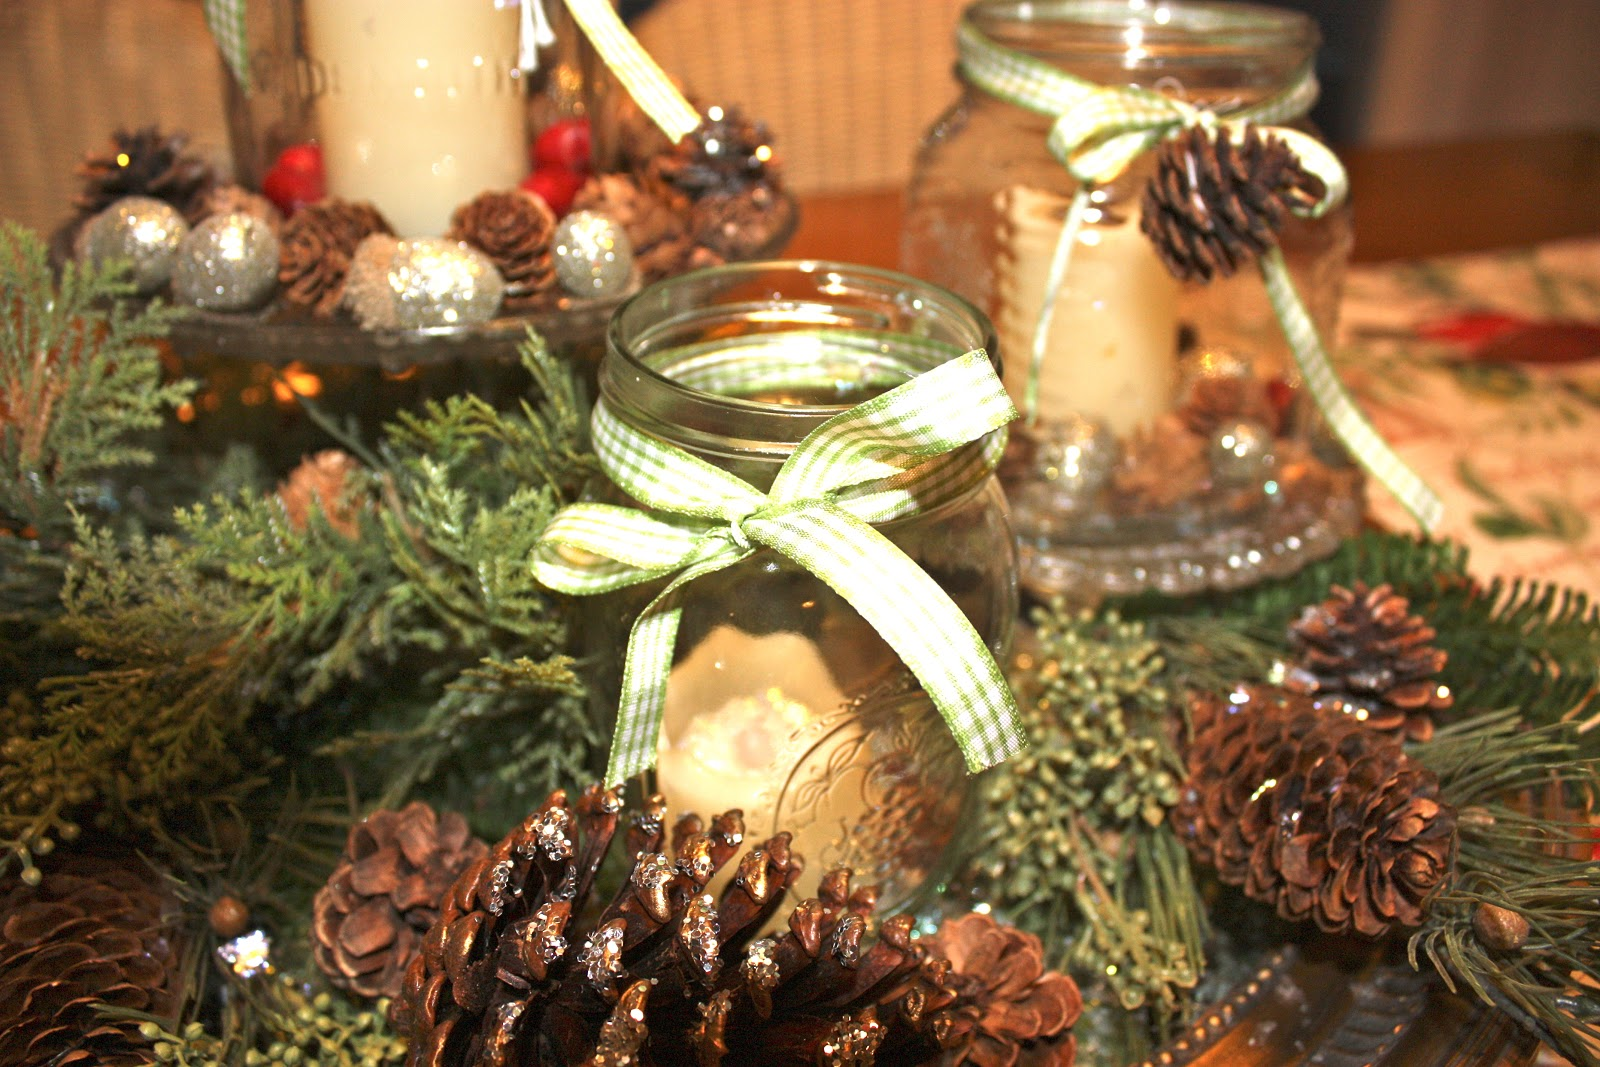 Country christmas table decoration ideas - A Country Winter Christmas Centerpiece